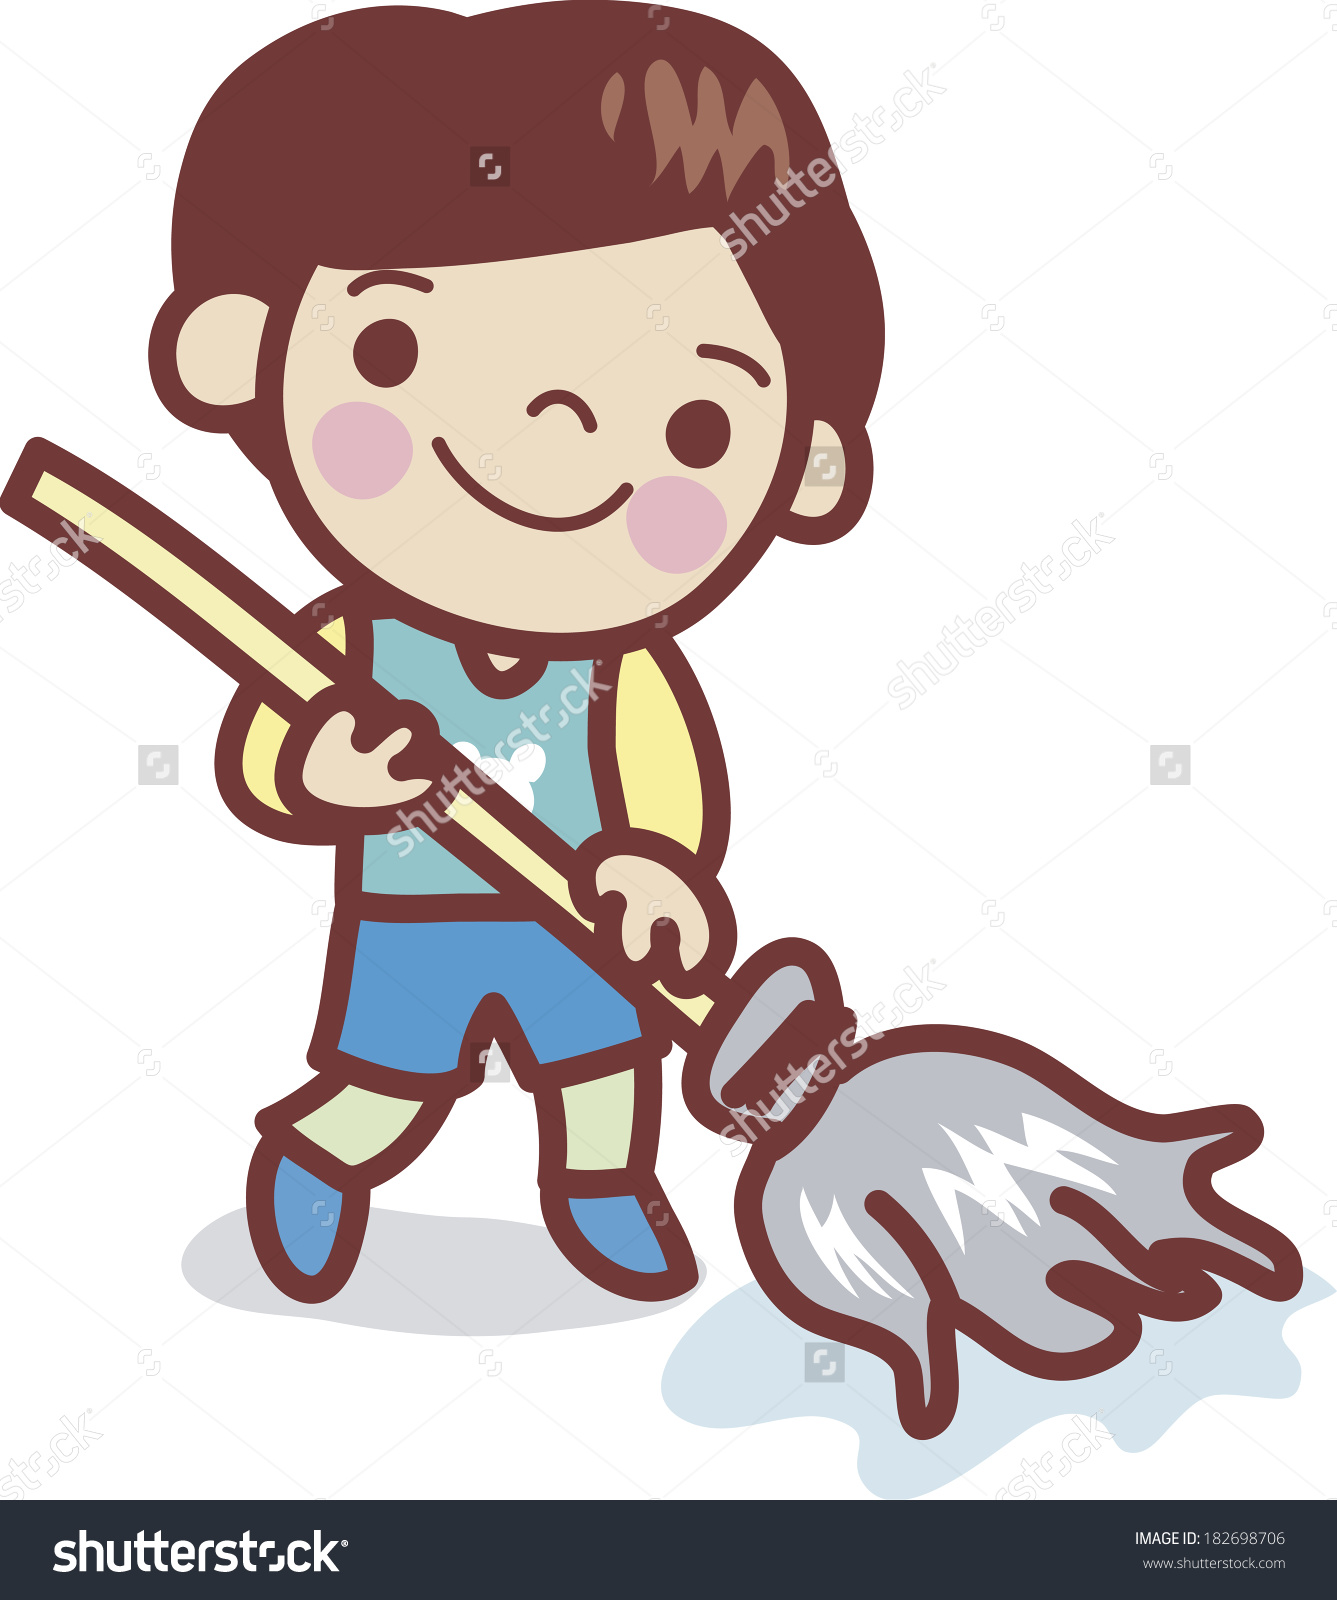 Cleaning mop clipart clipground